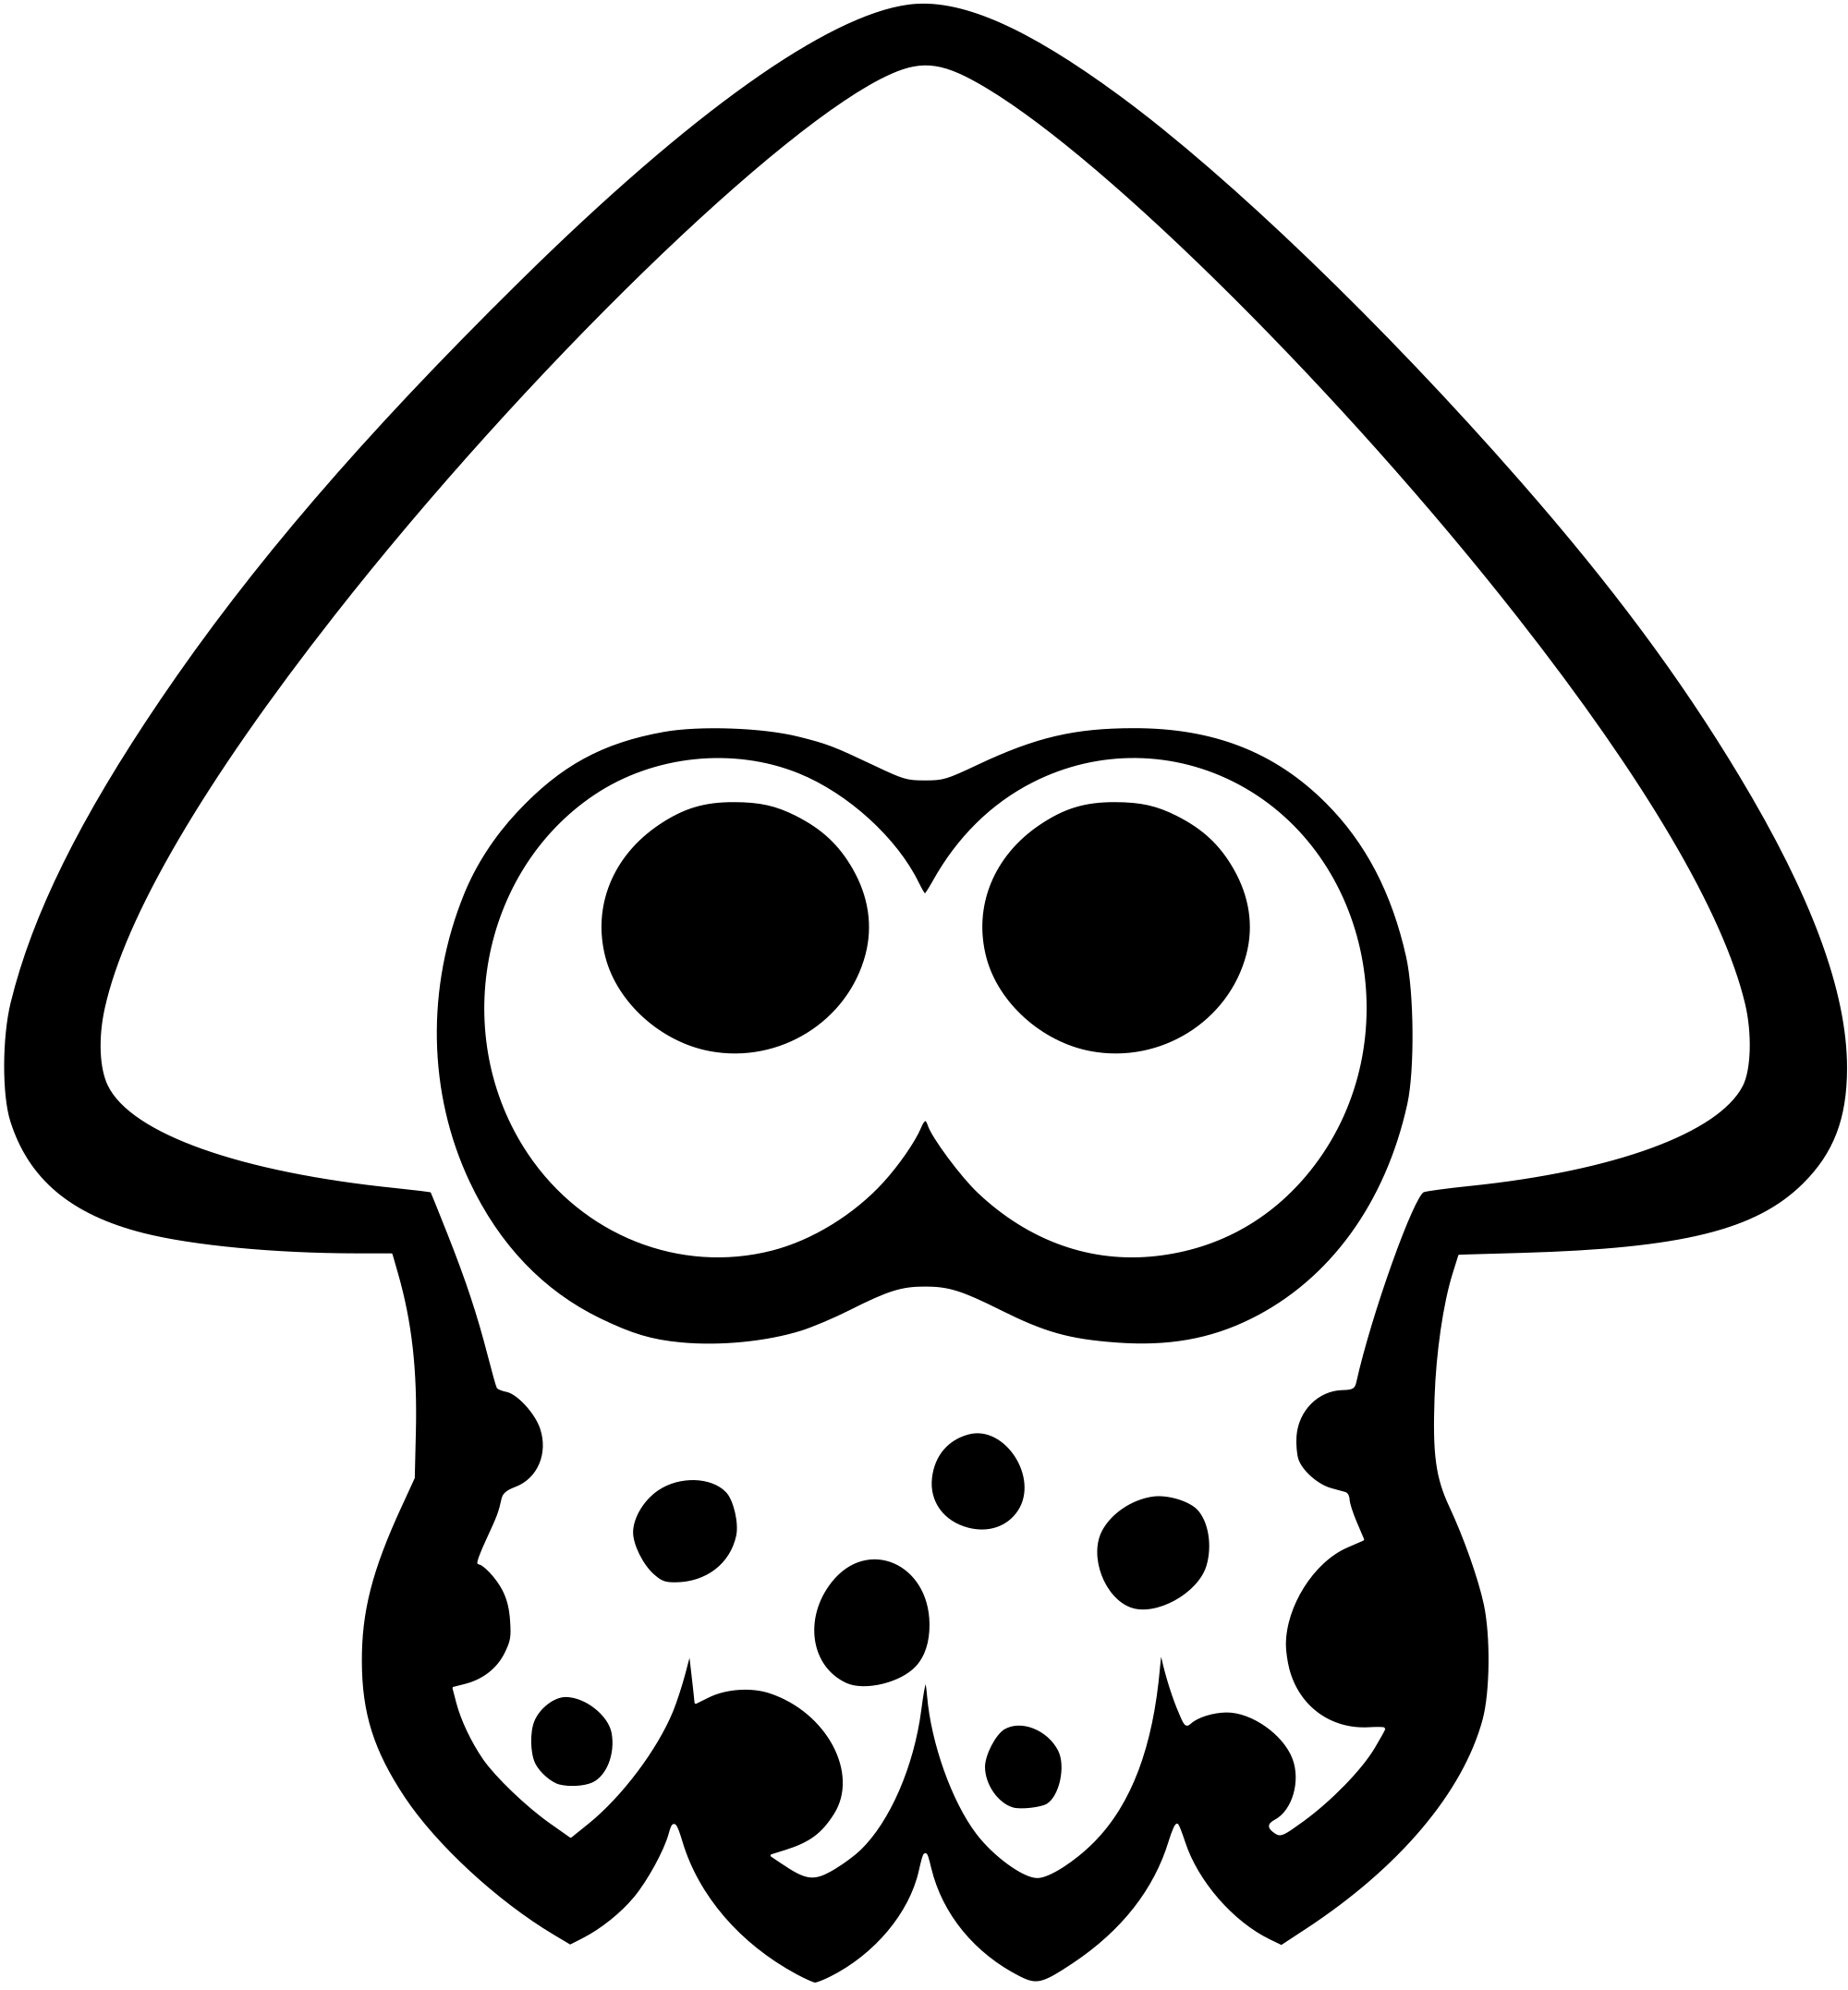 svg royalty free transparent squid inkling #117424316